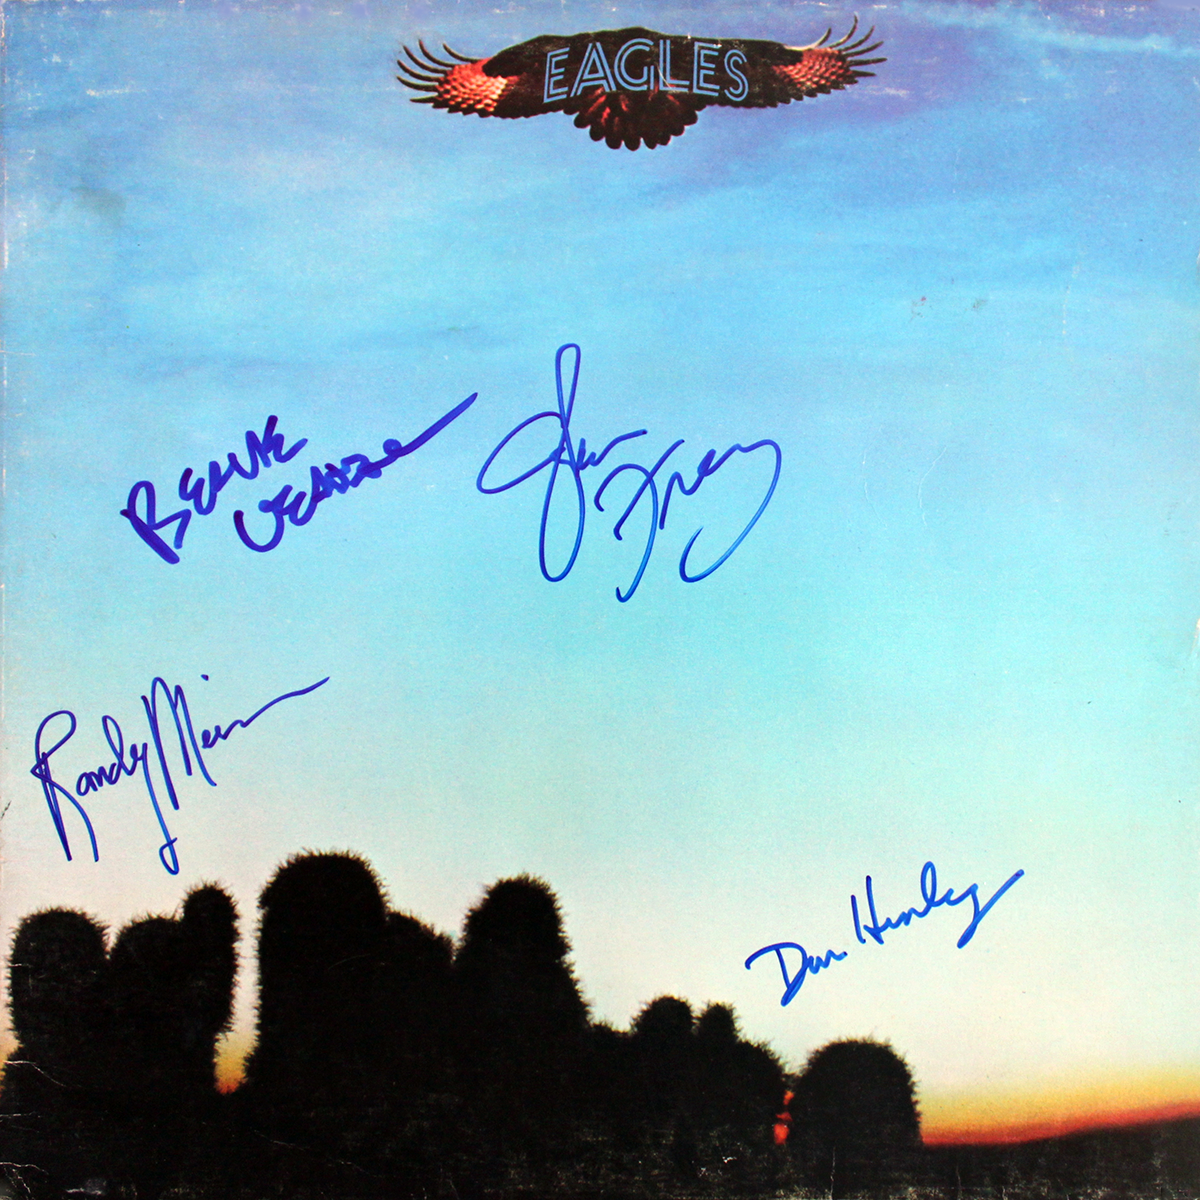 Eagles LP #4